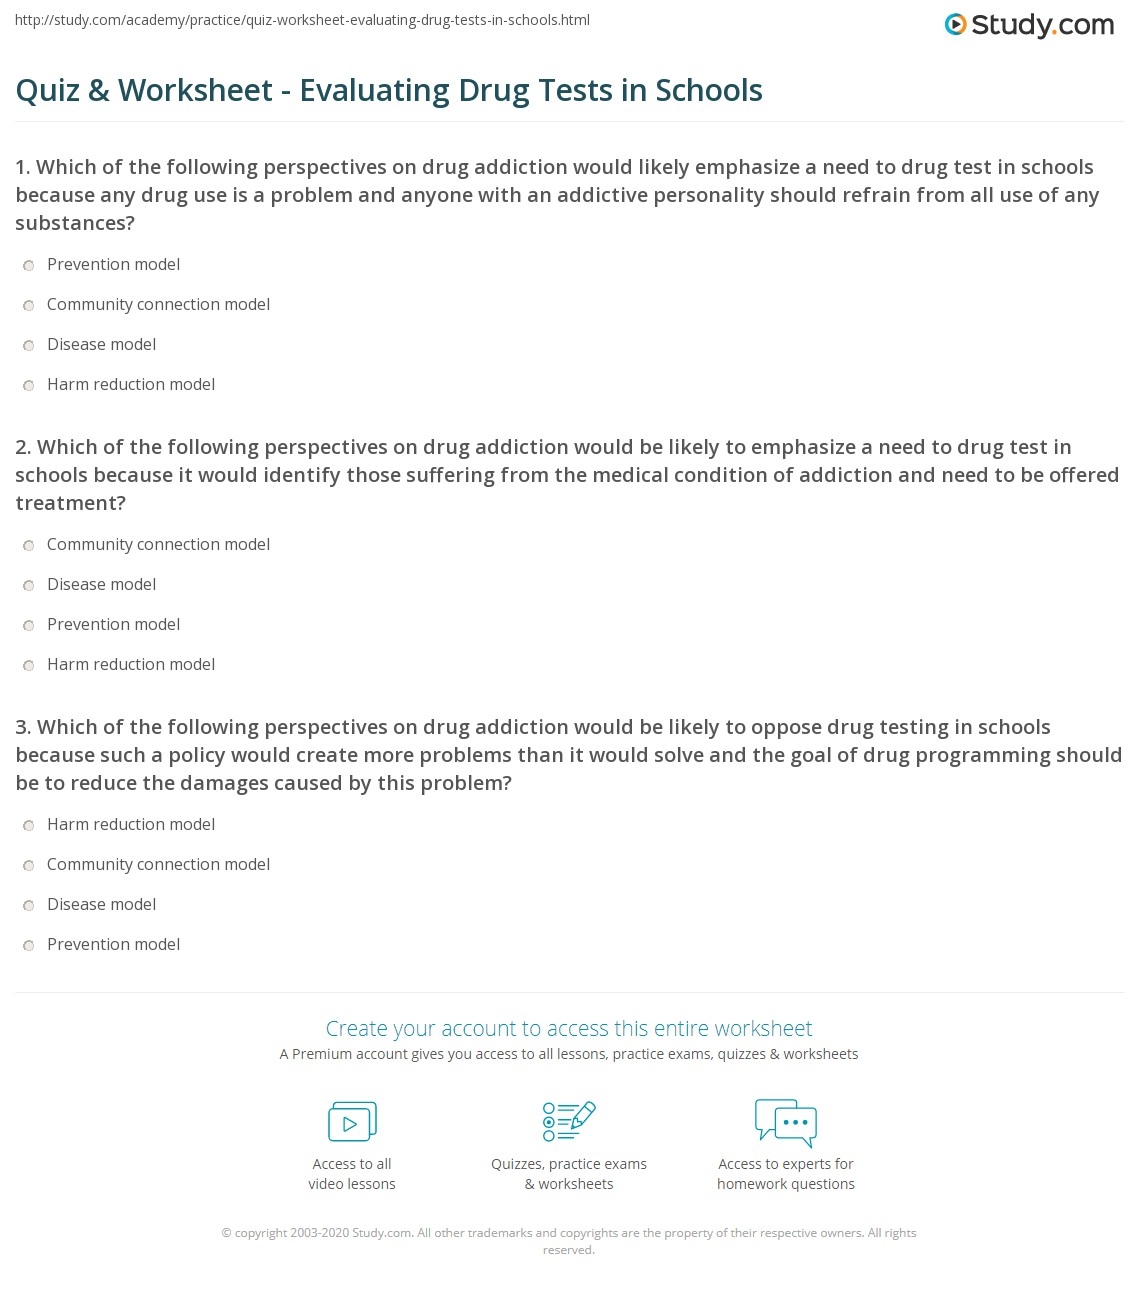 Worksheet For Substance Use Harm Reduction